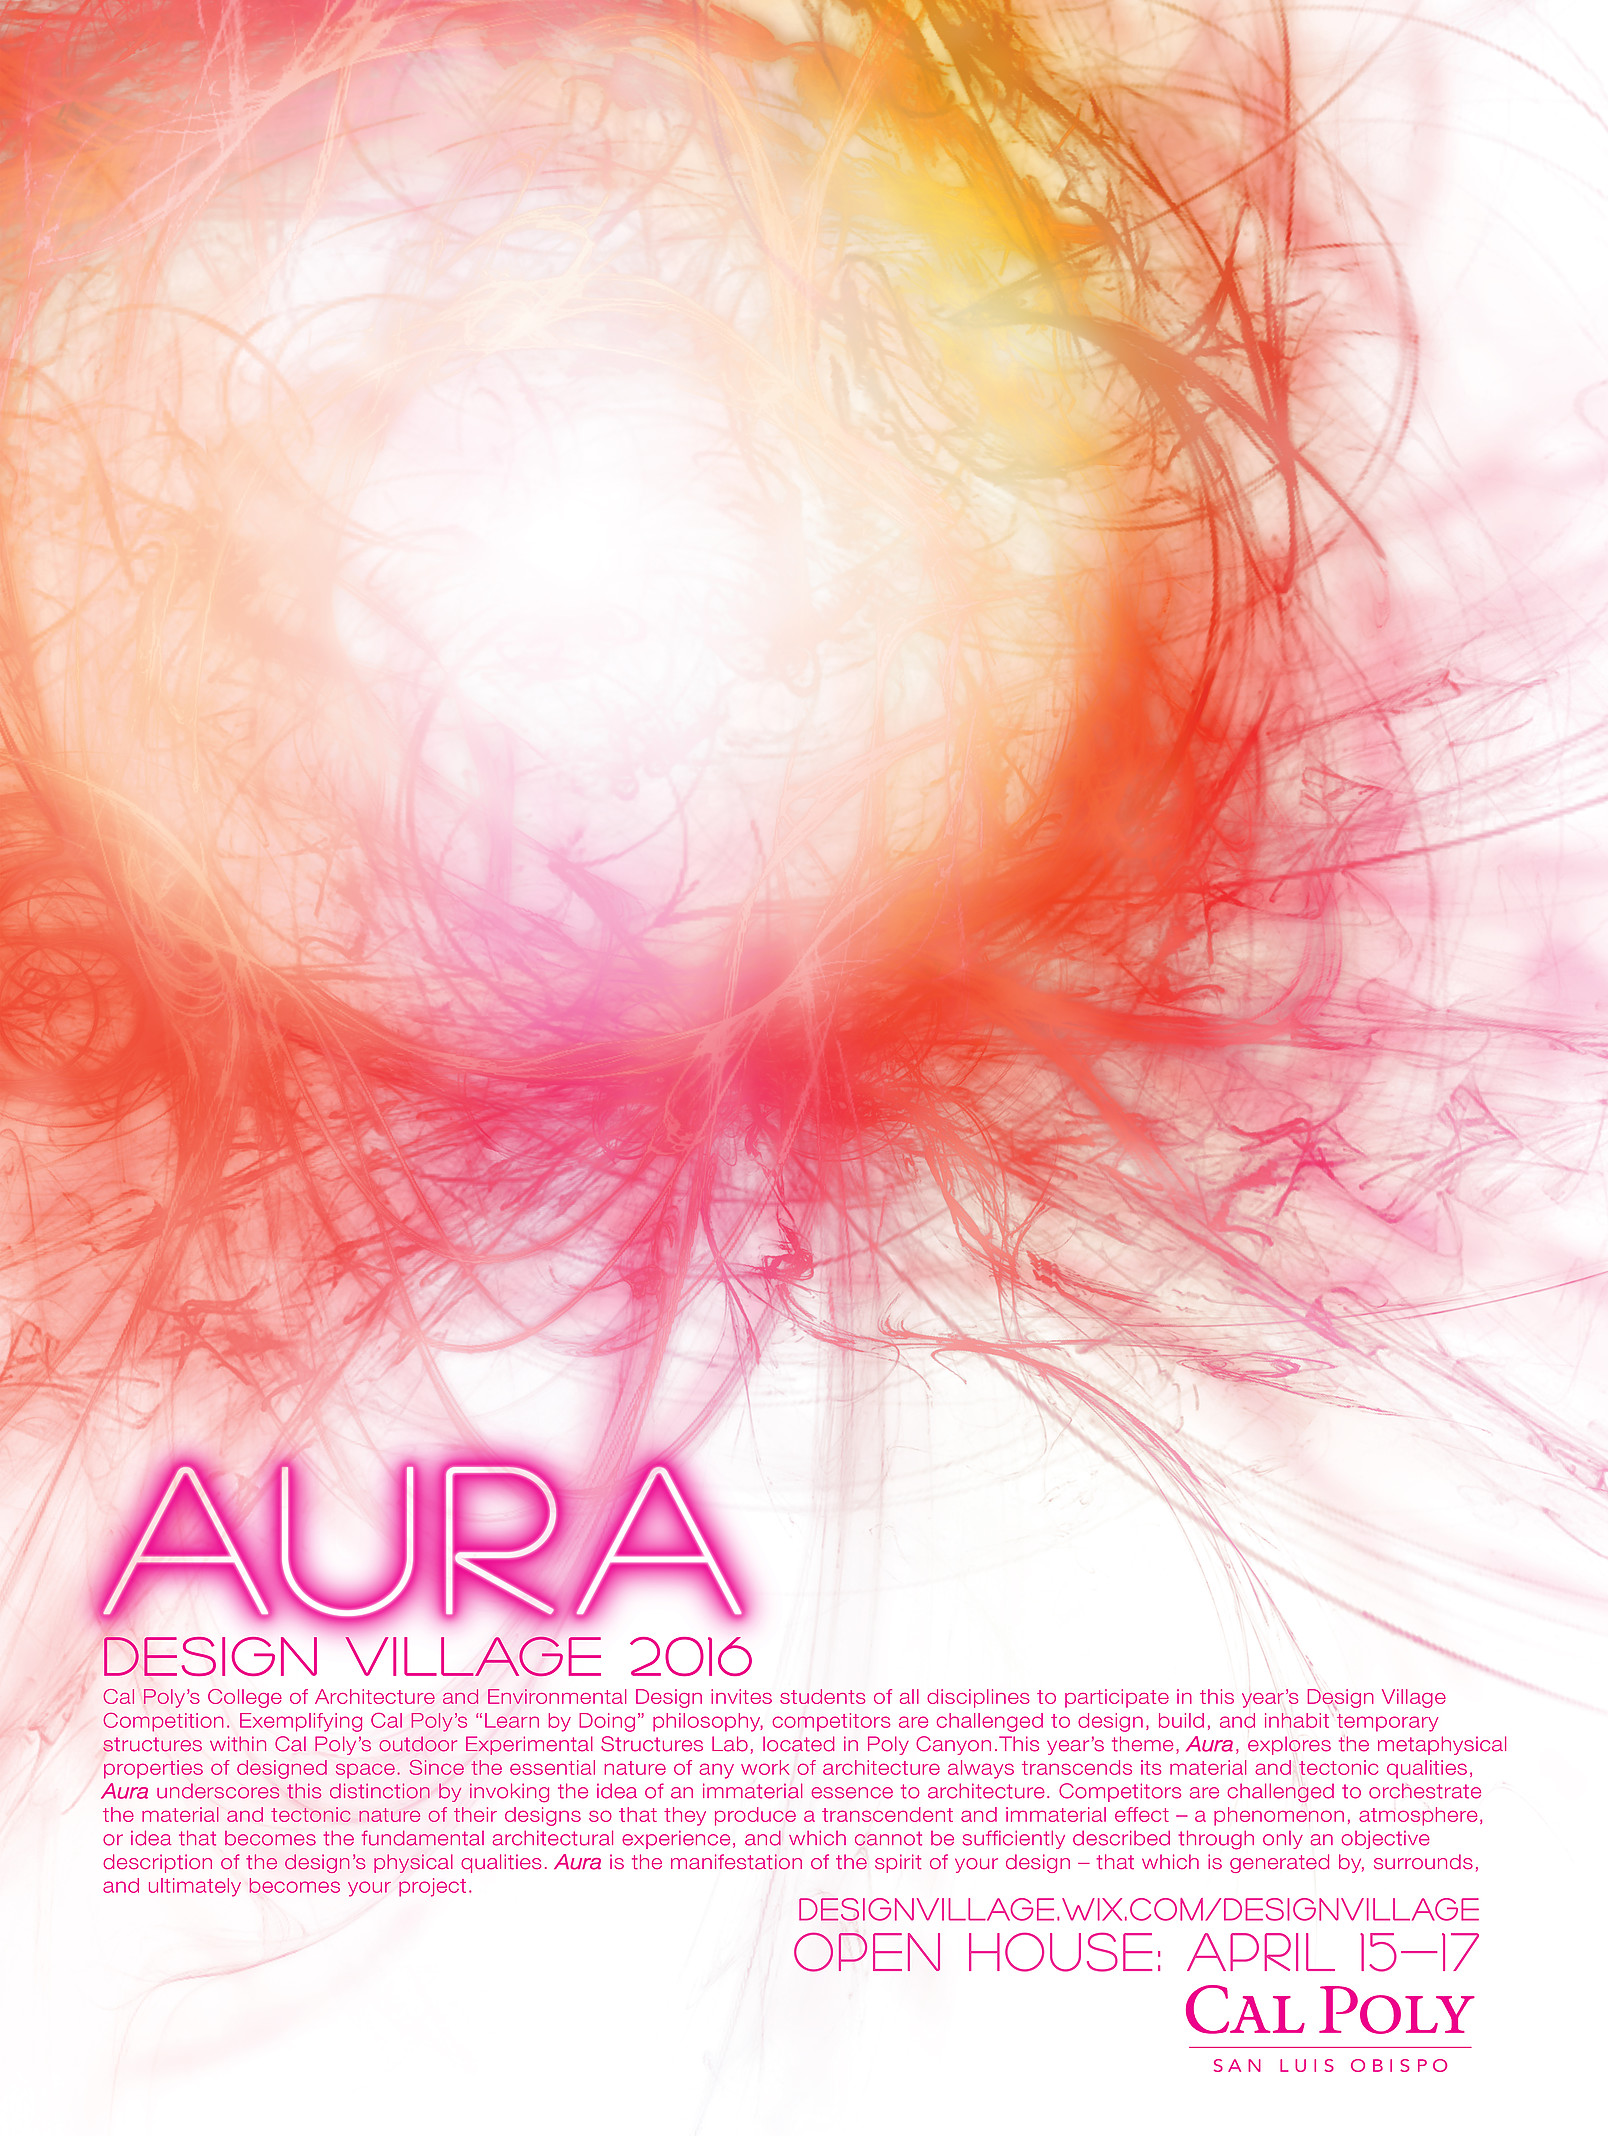 AURA Design Village 2016